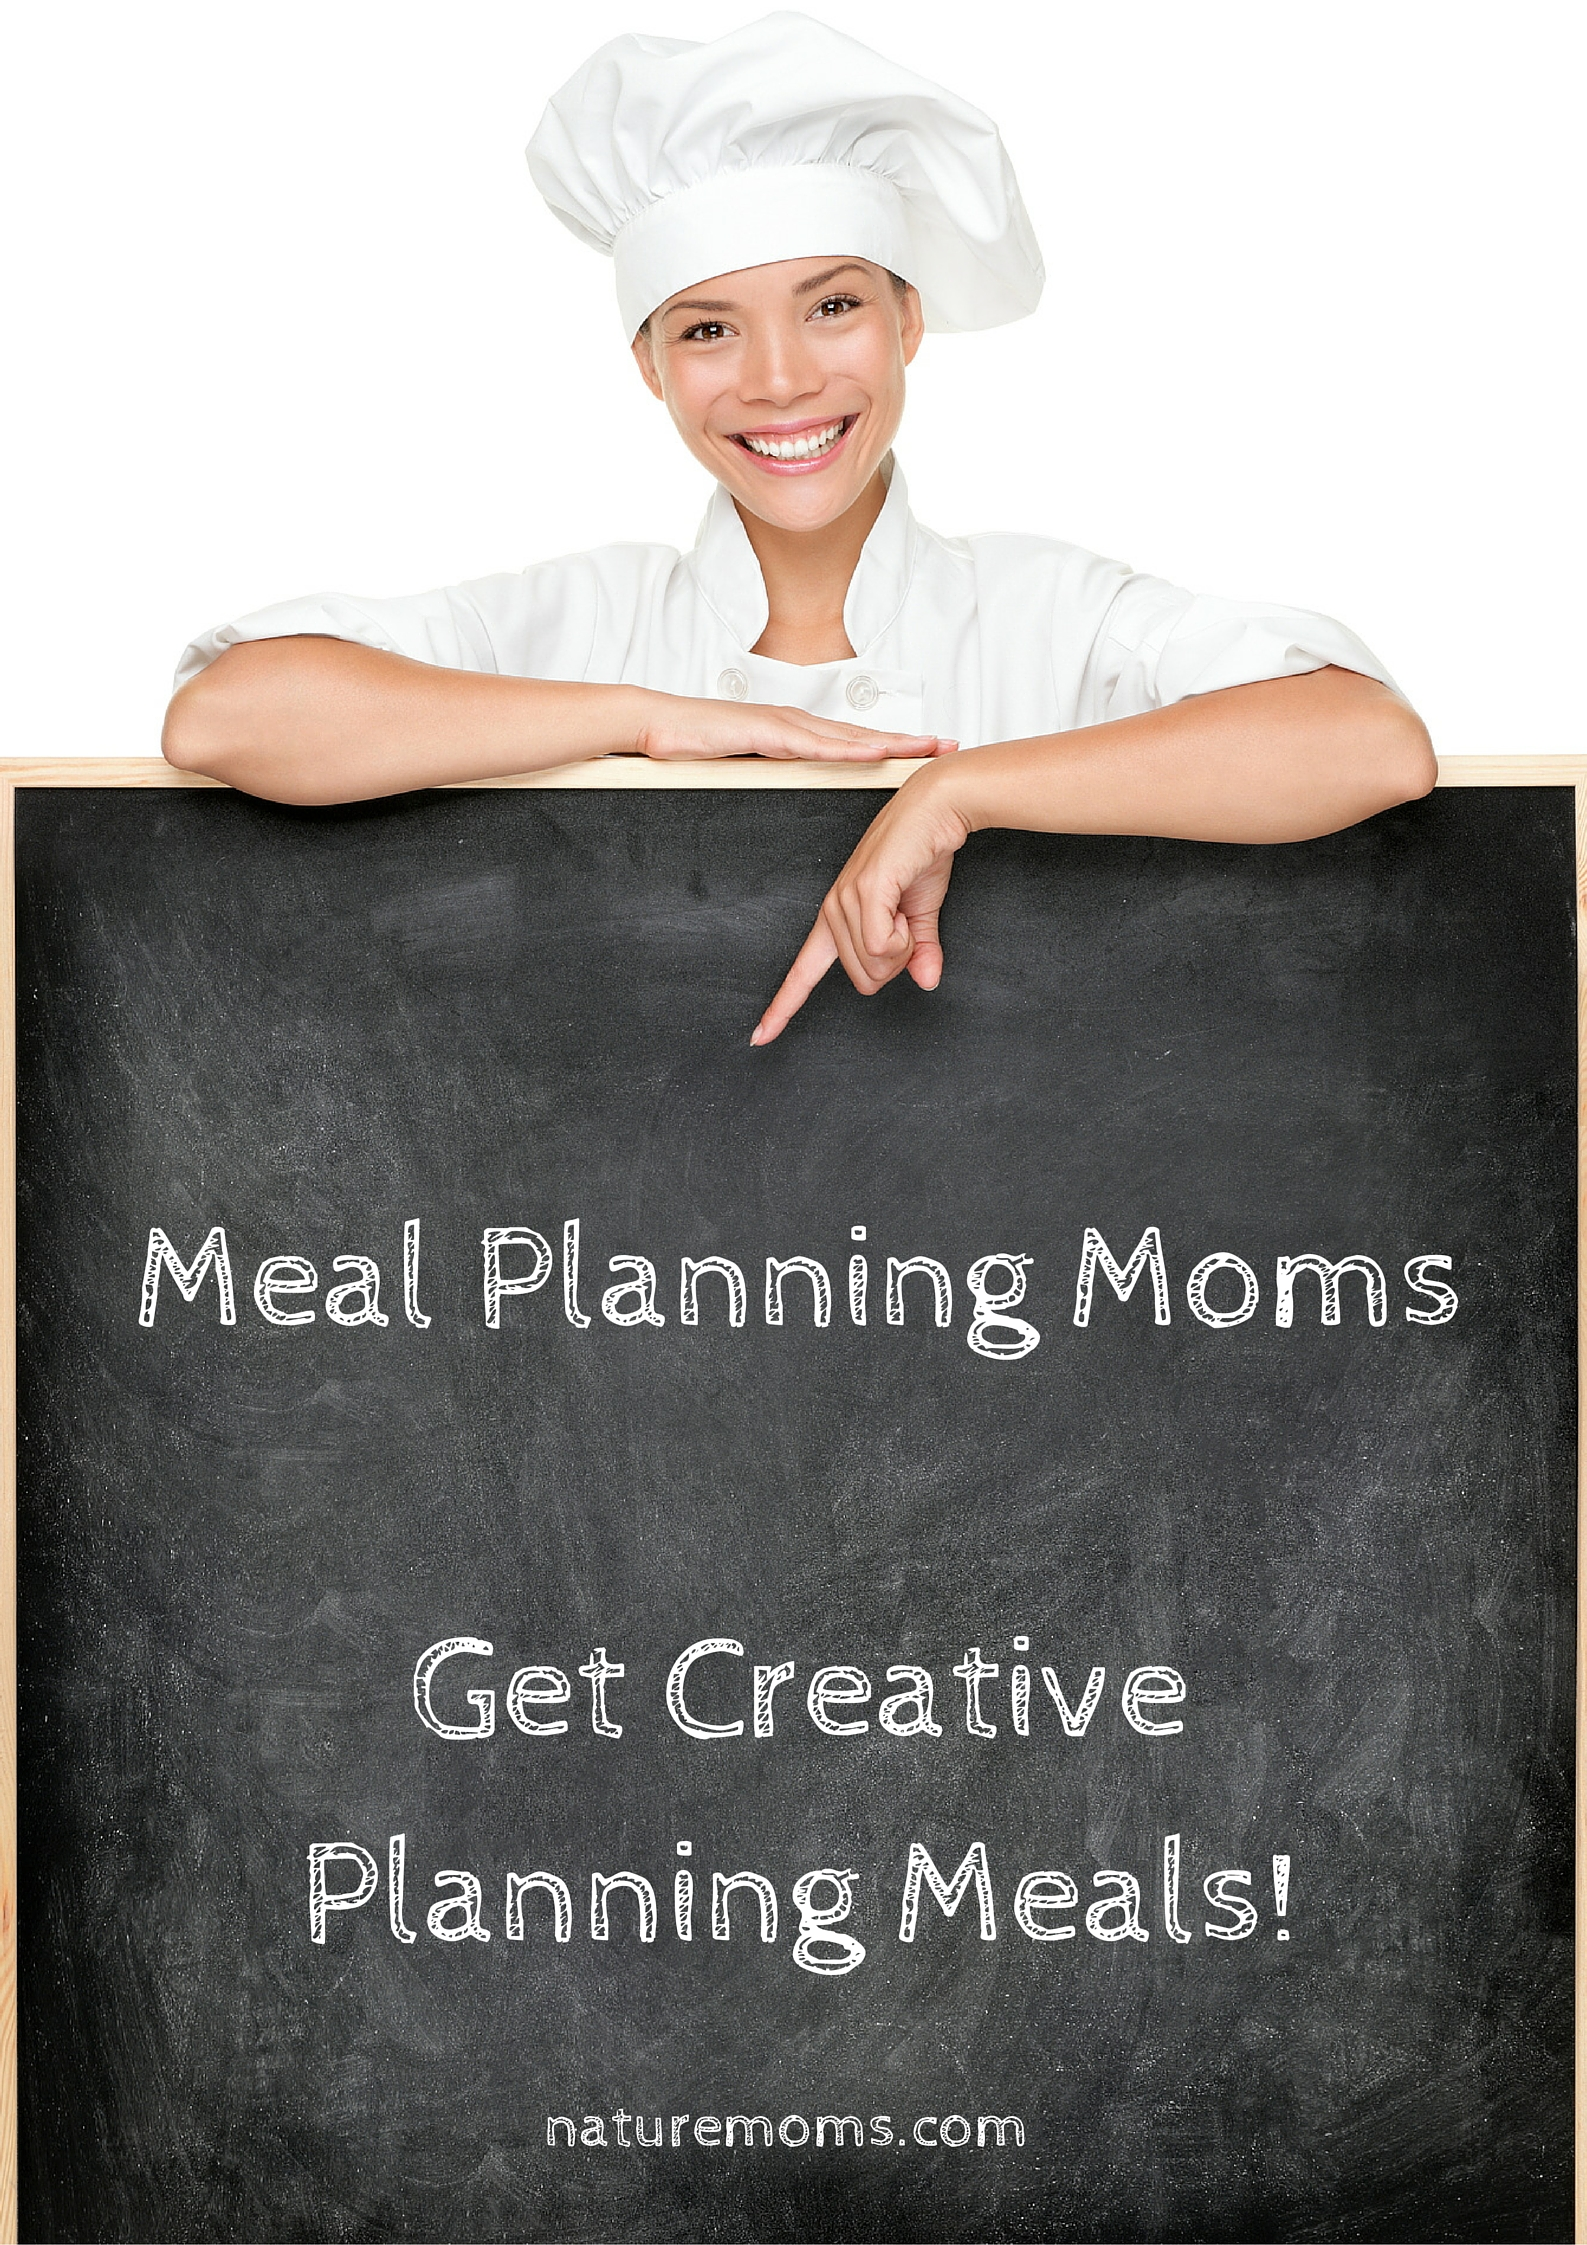 Meal Planning Moms – Get Creative Planning Meals